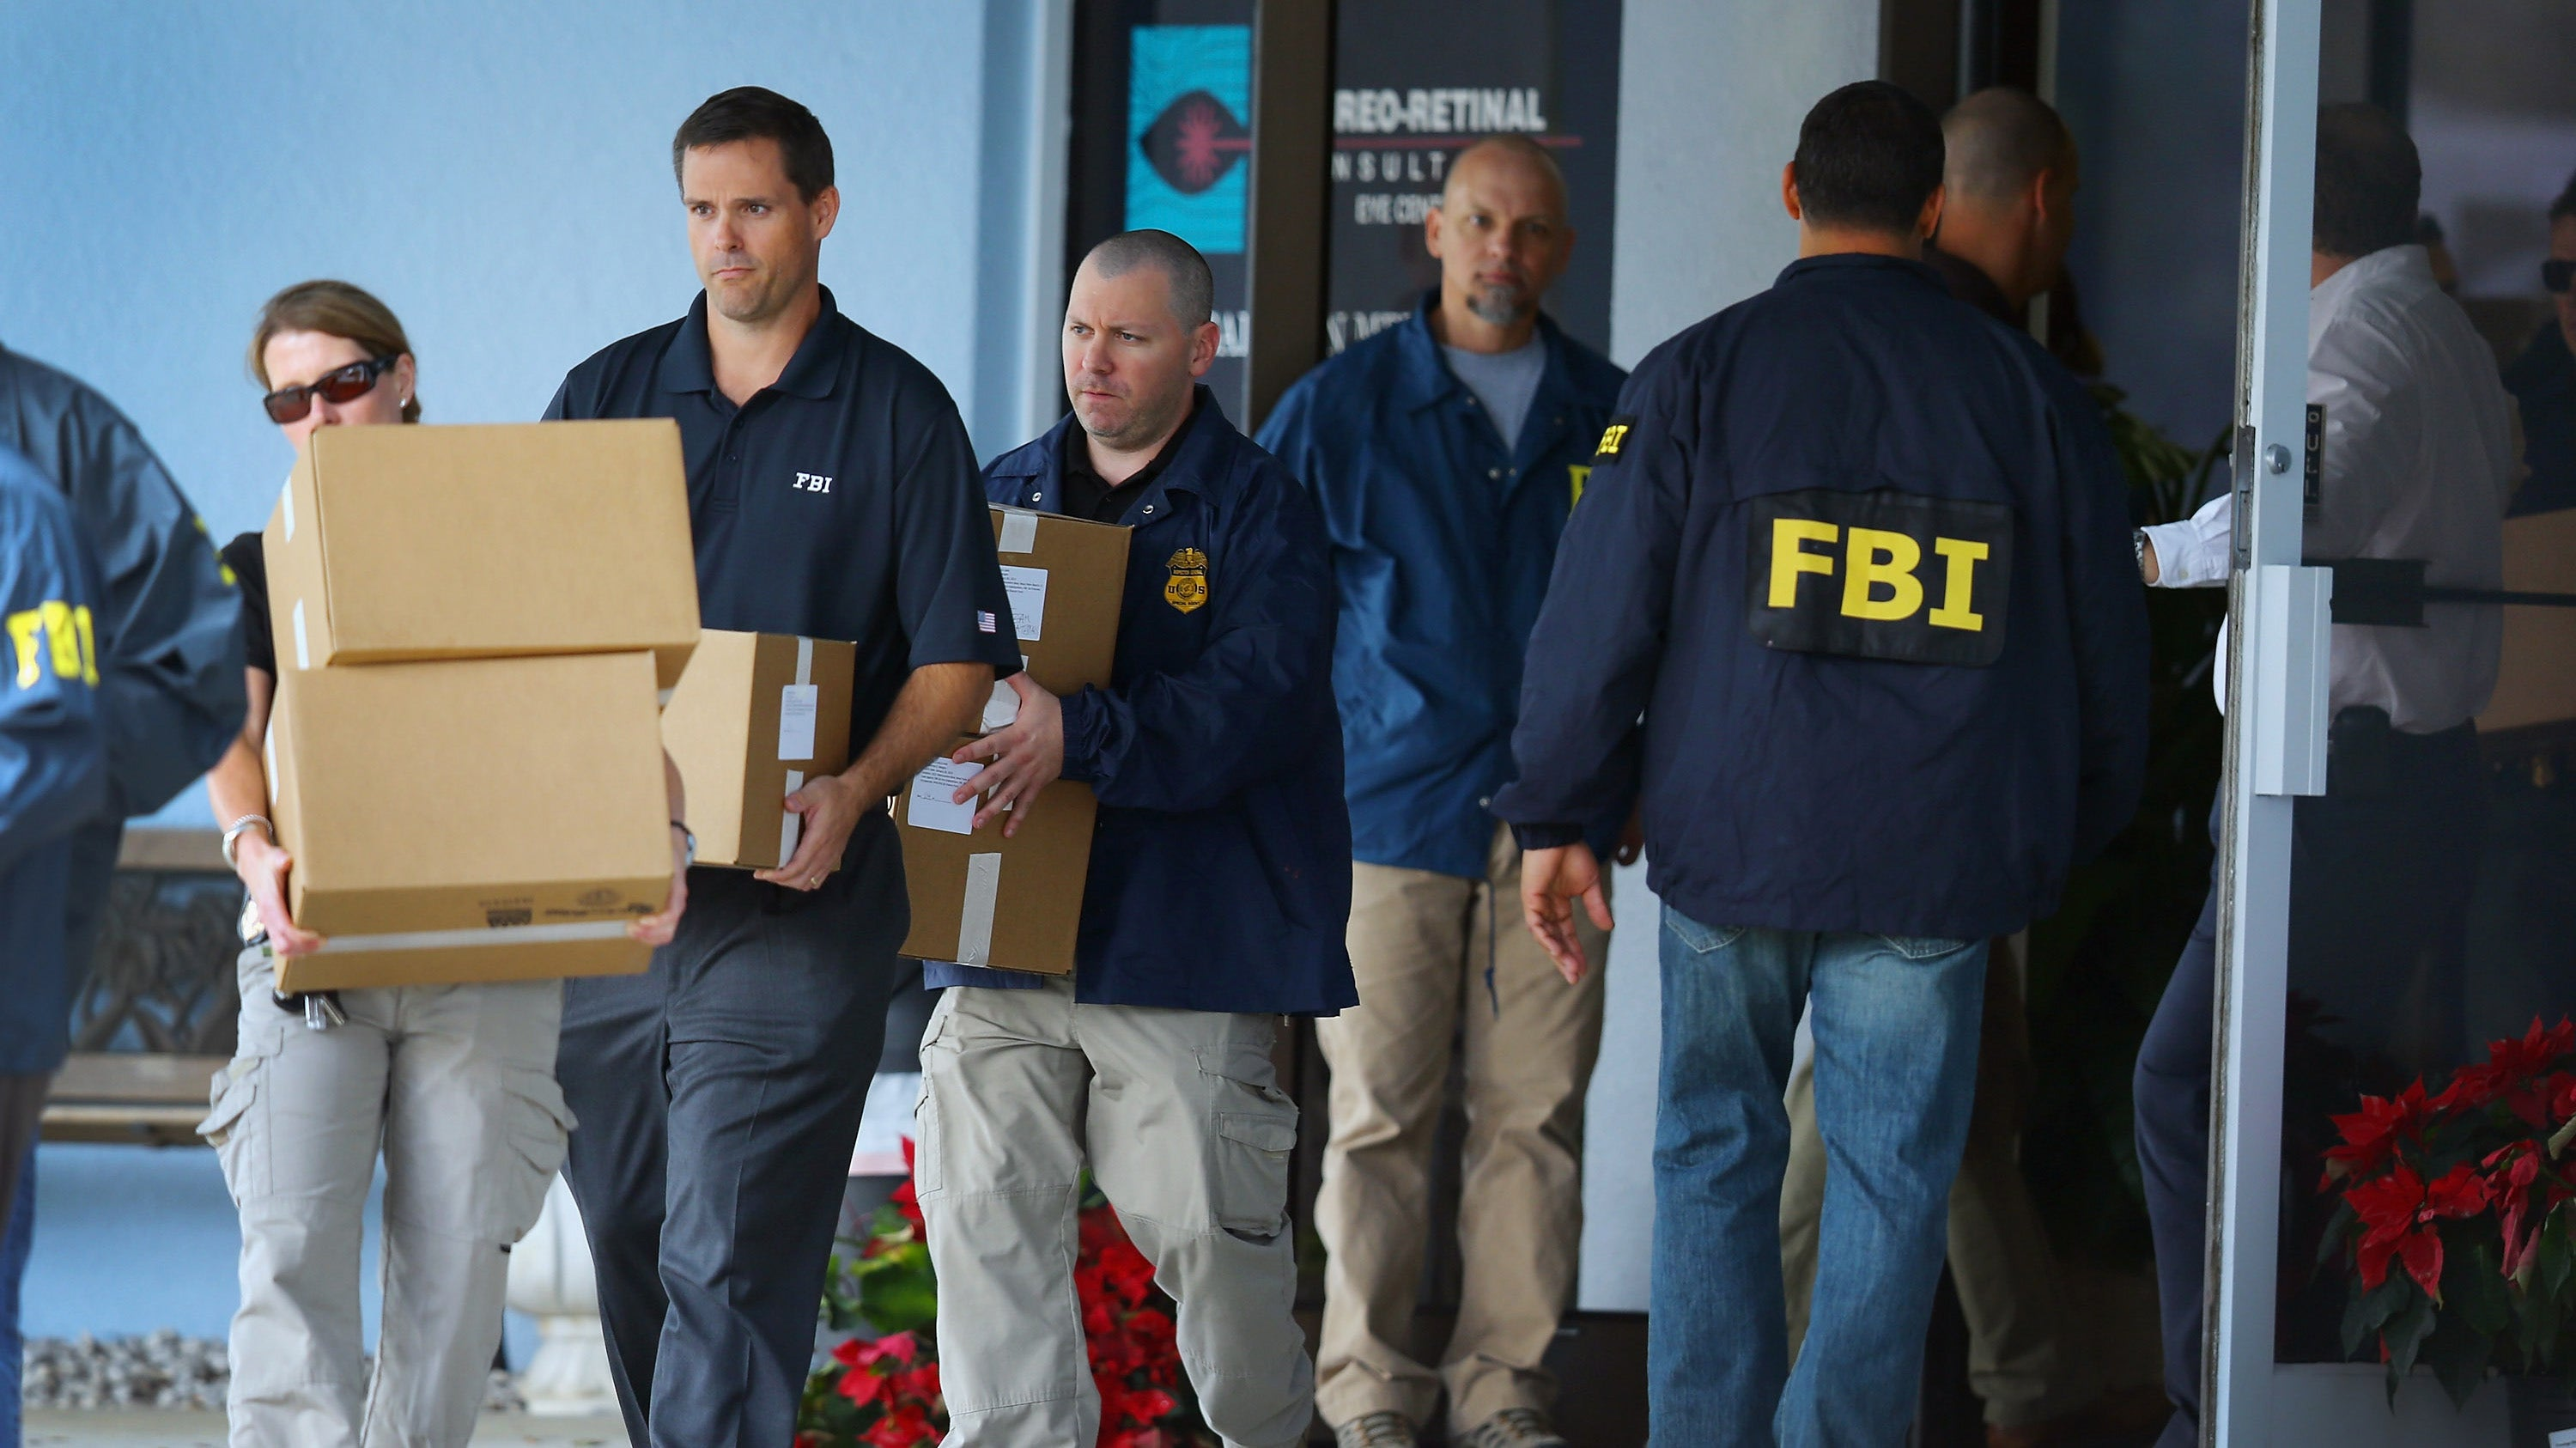 an analysis of the life of fbi agents A day in the life there is no typical they should be able to leave at the fbi's dispense special agents will mostly have jobs far away from their homes however.